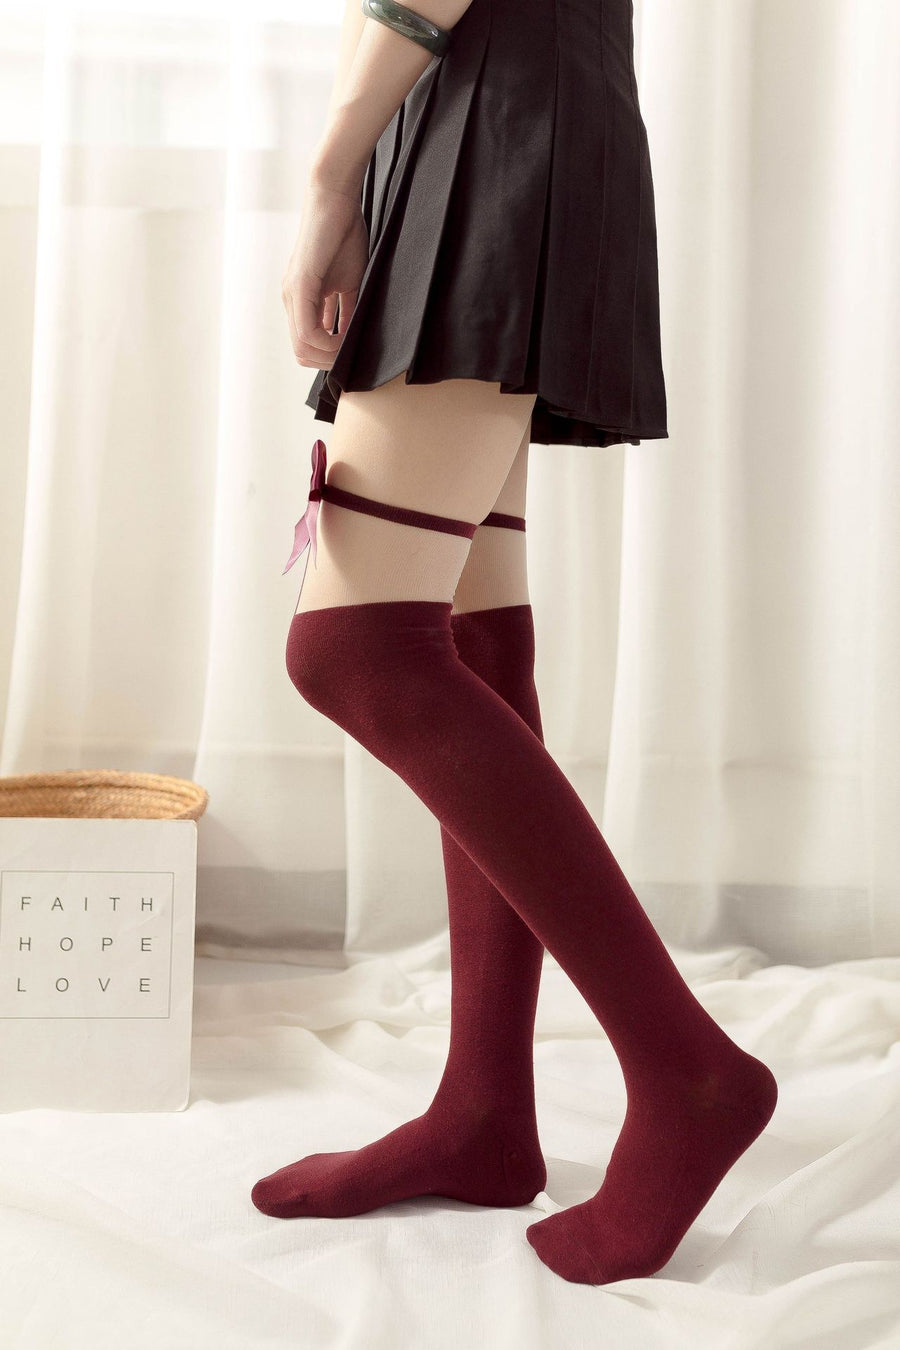 Ribbon Over-knees stocking - Peiliee Shop